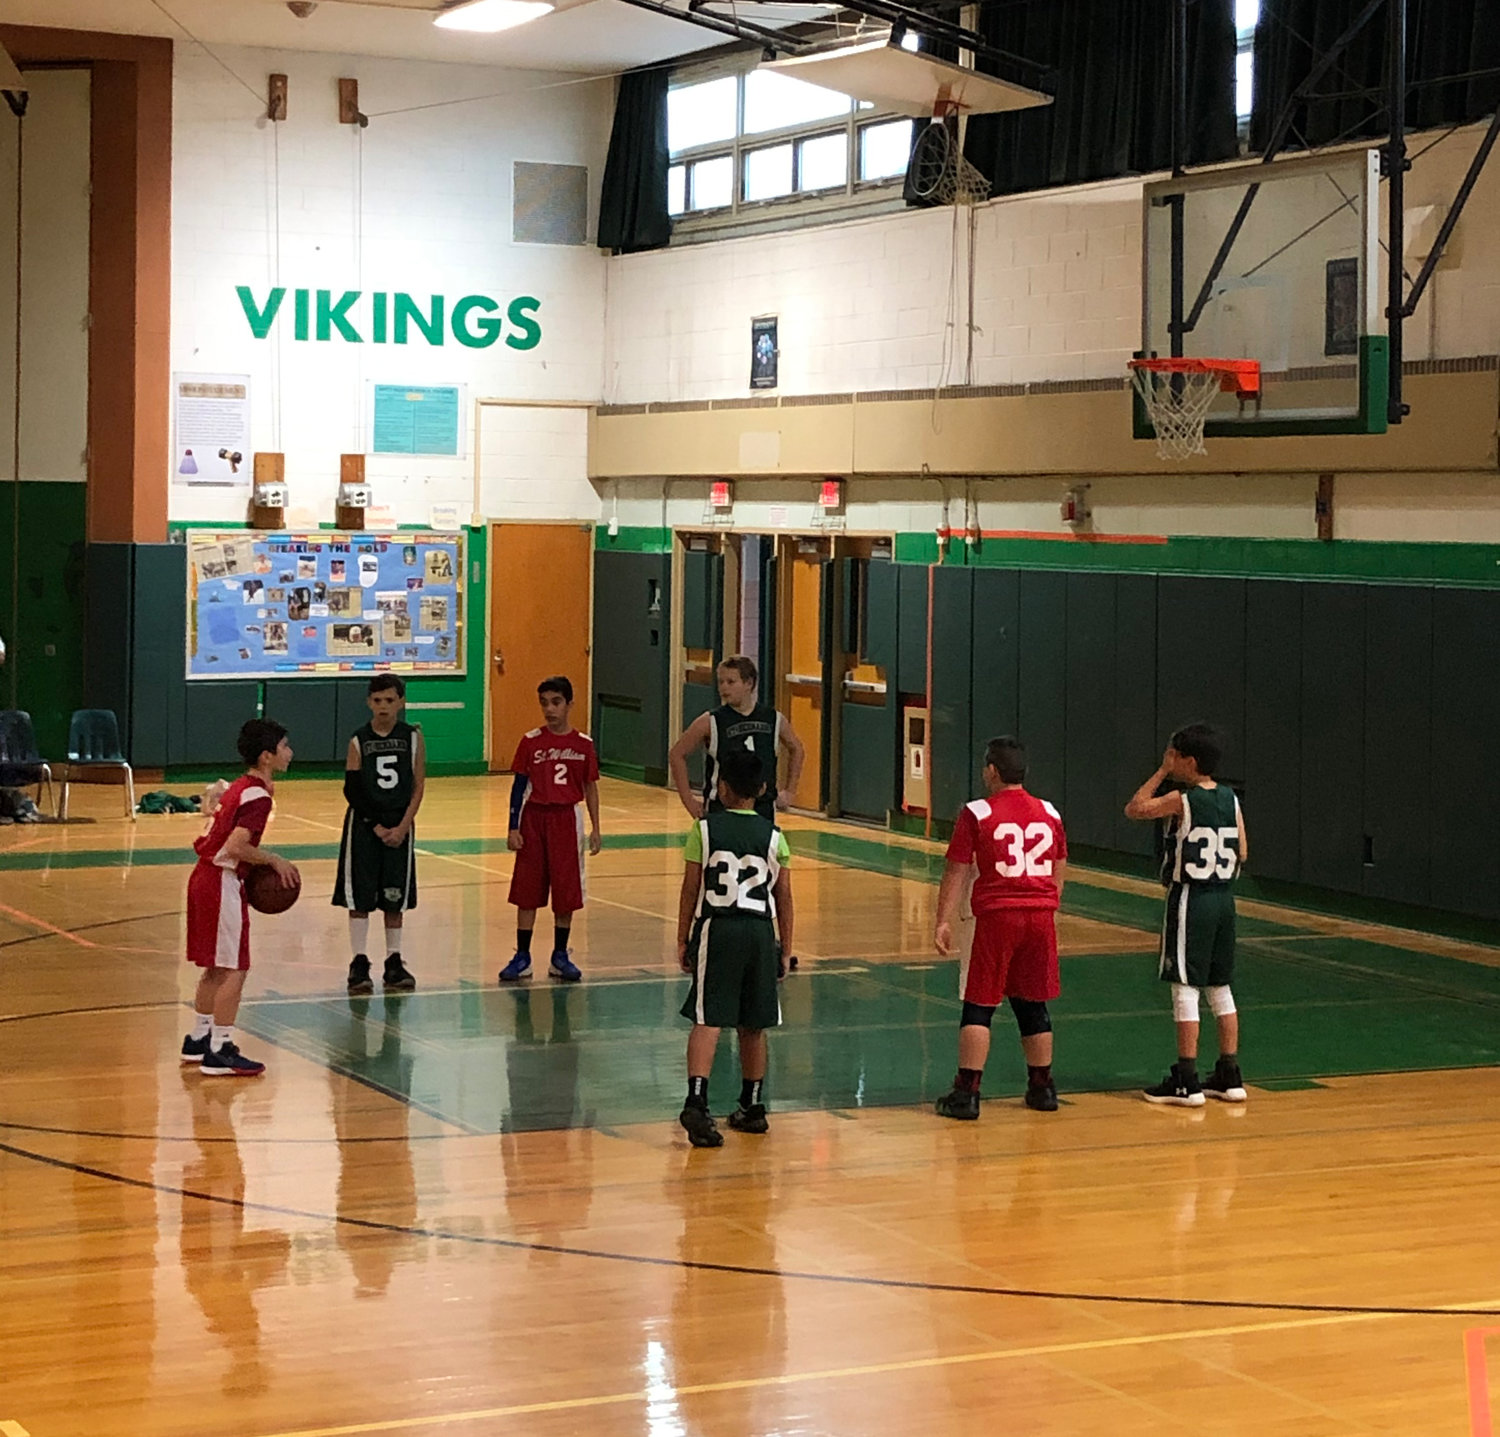 Throughout the CYO basketball season, young people are taught the fundamentals of the game by volunteer coaches.